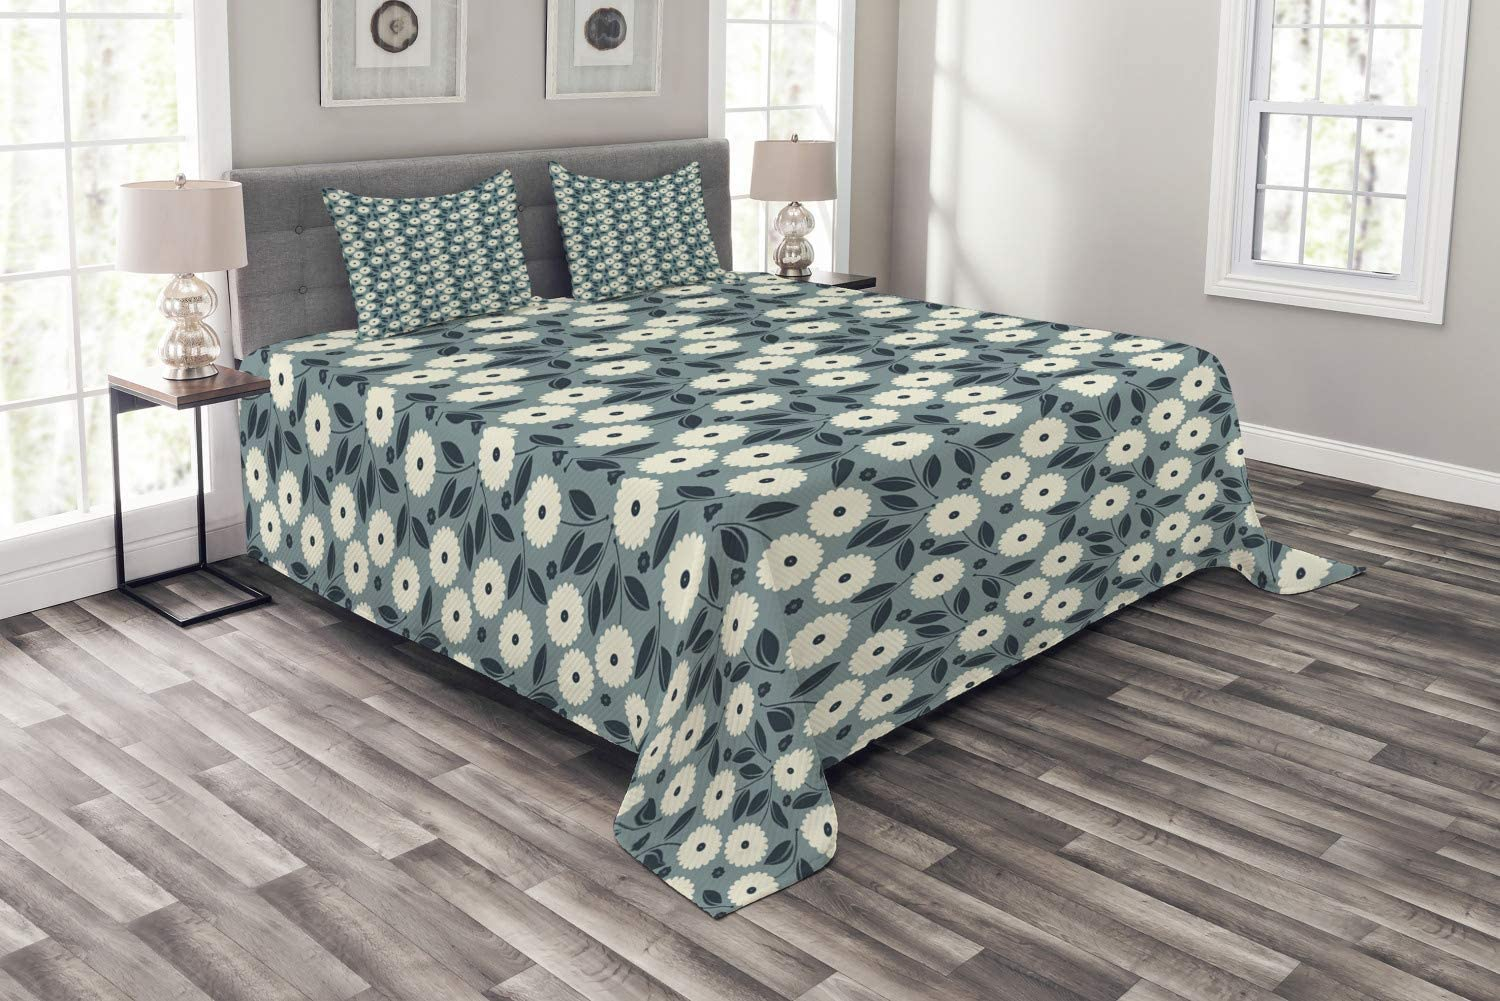 Ambesonne Ivory and Blue High quality store new Bedspread Style Garden Art of Bouquet